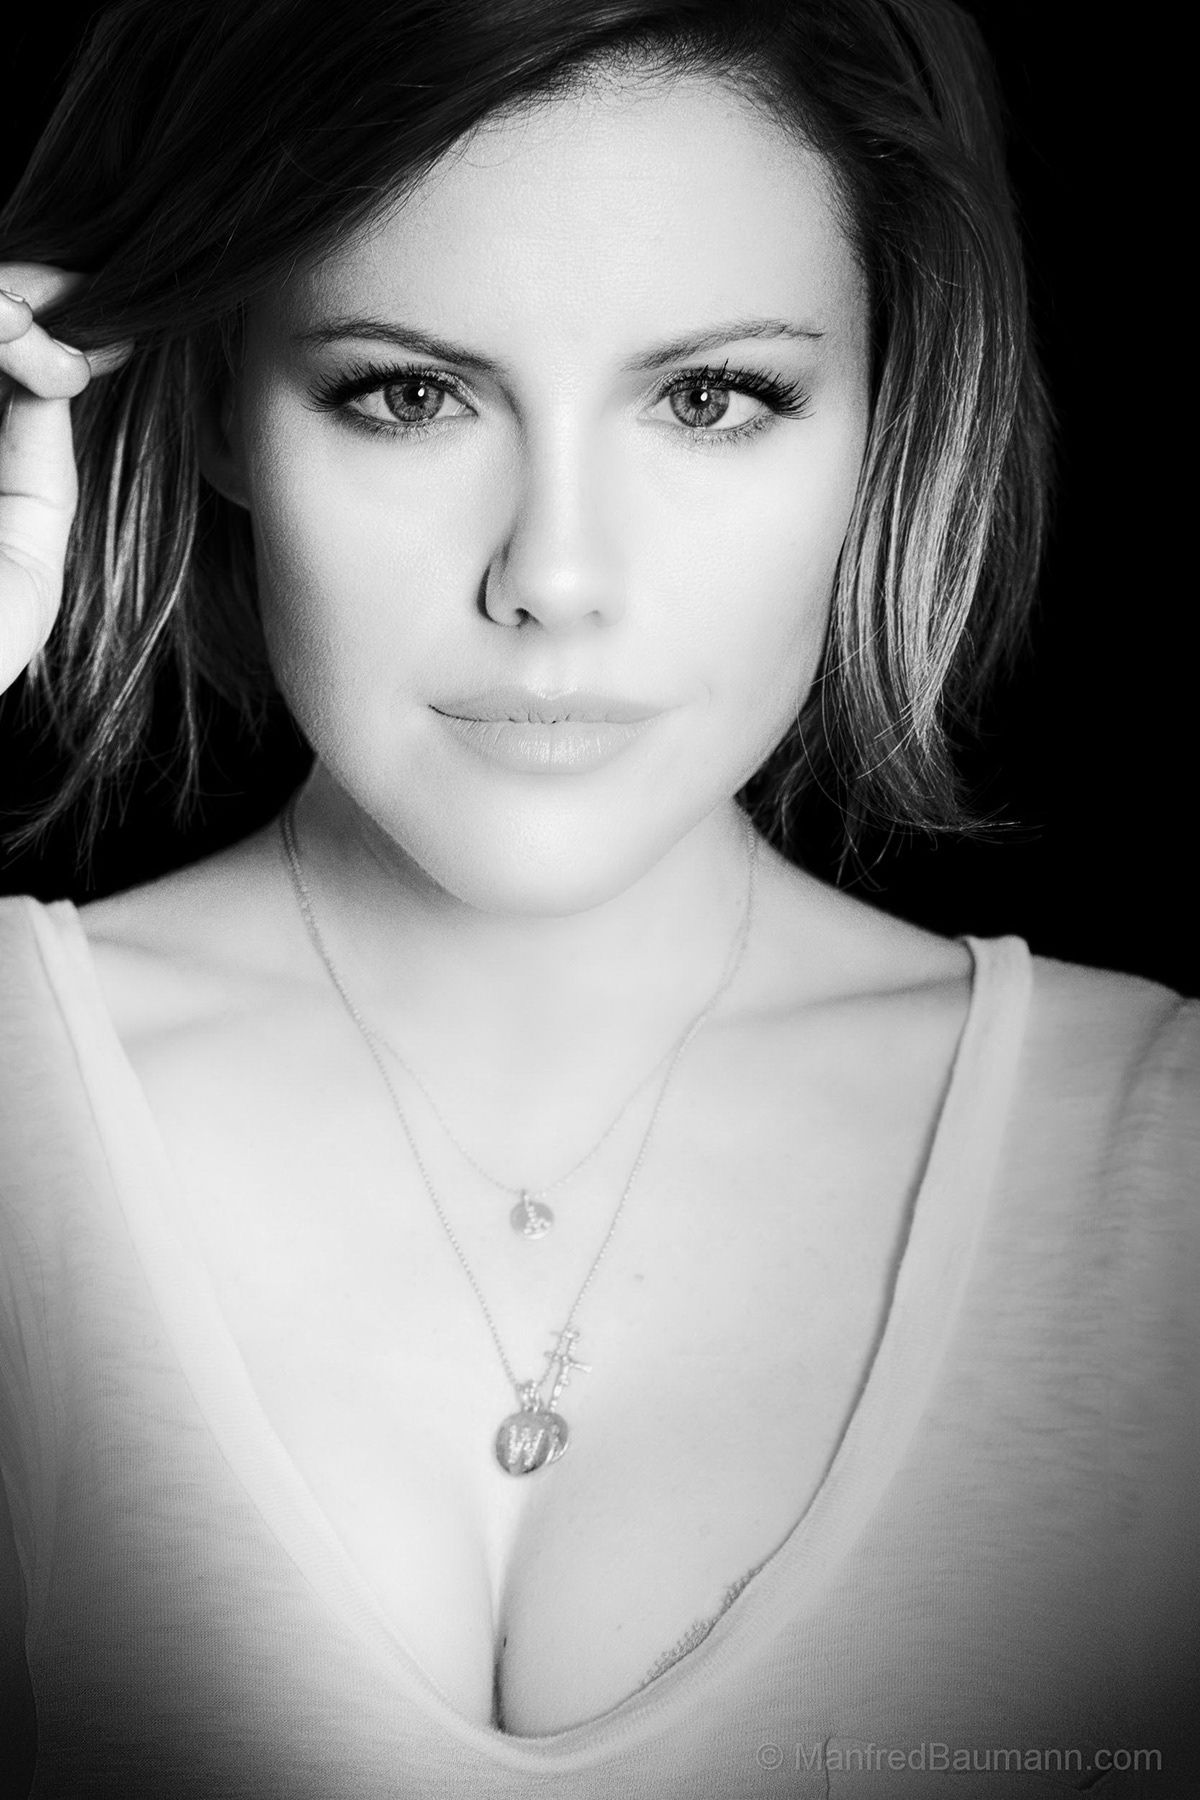 Canadian Actress & Netflix Star Kathleen Robertson on